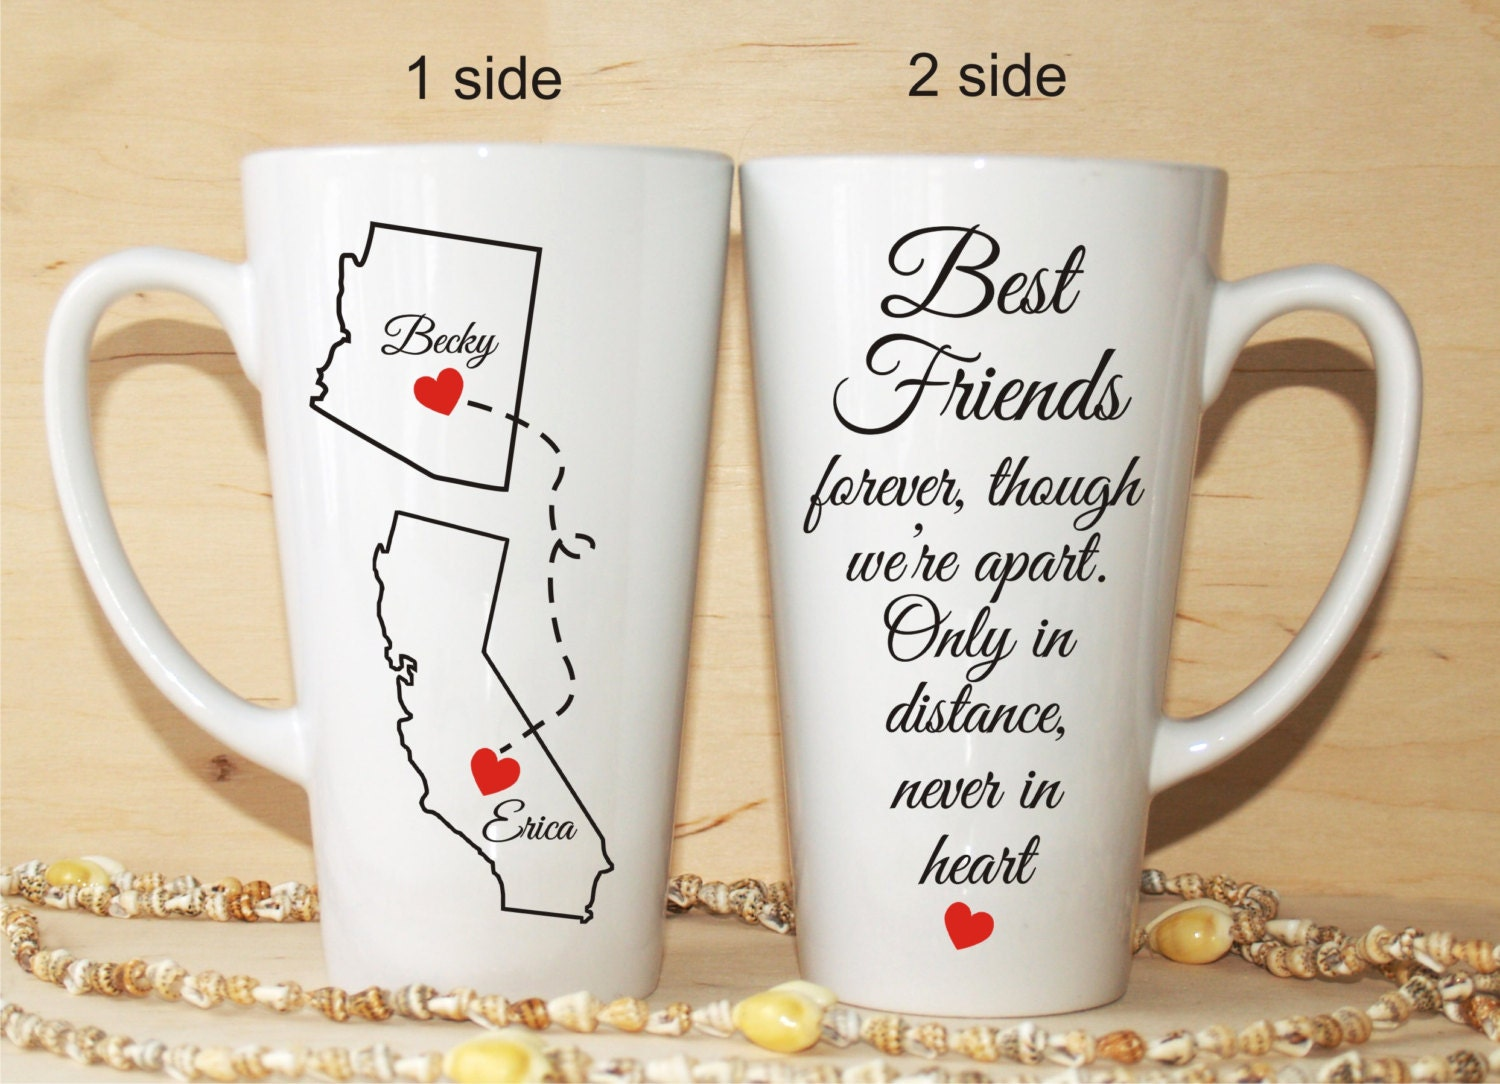 Quotes About Long Distance Friendship Friendship Quote Mugs Friendship Mug Gin Vodka Best Friend Gift